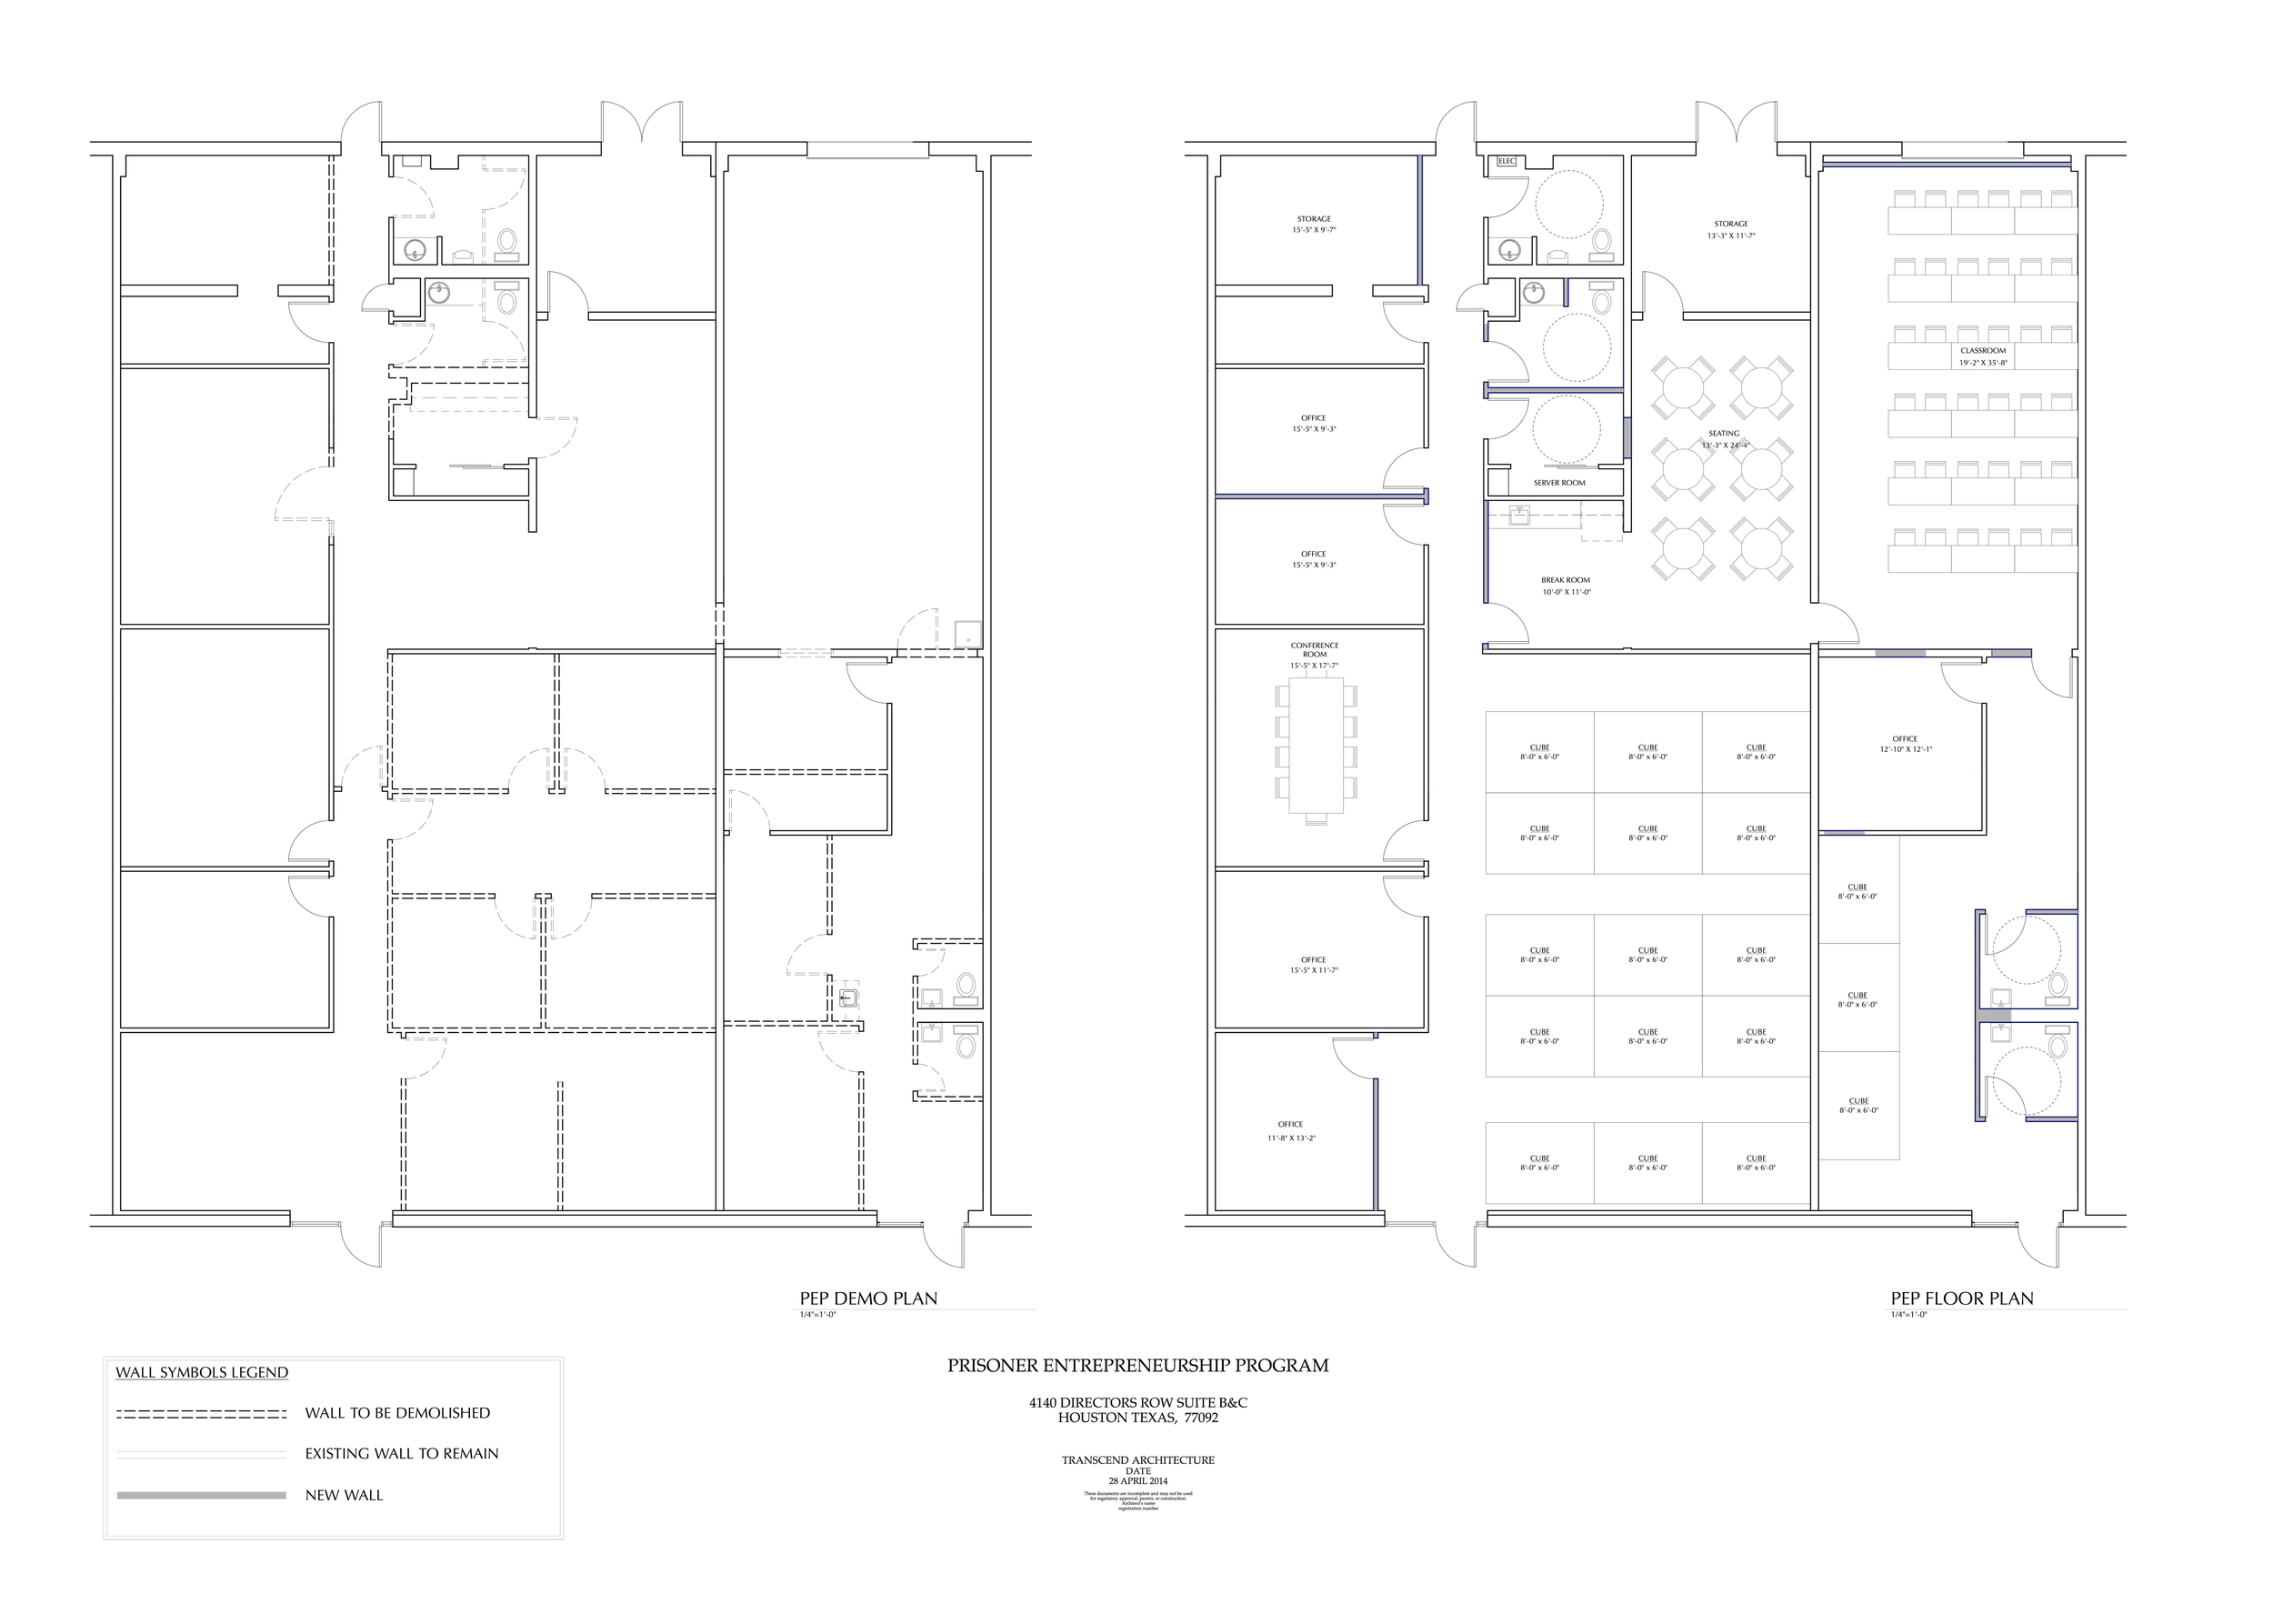 Demolition Plan and New Floor Plan for the PEP Program